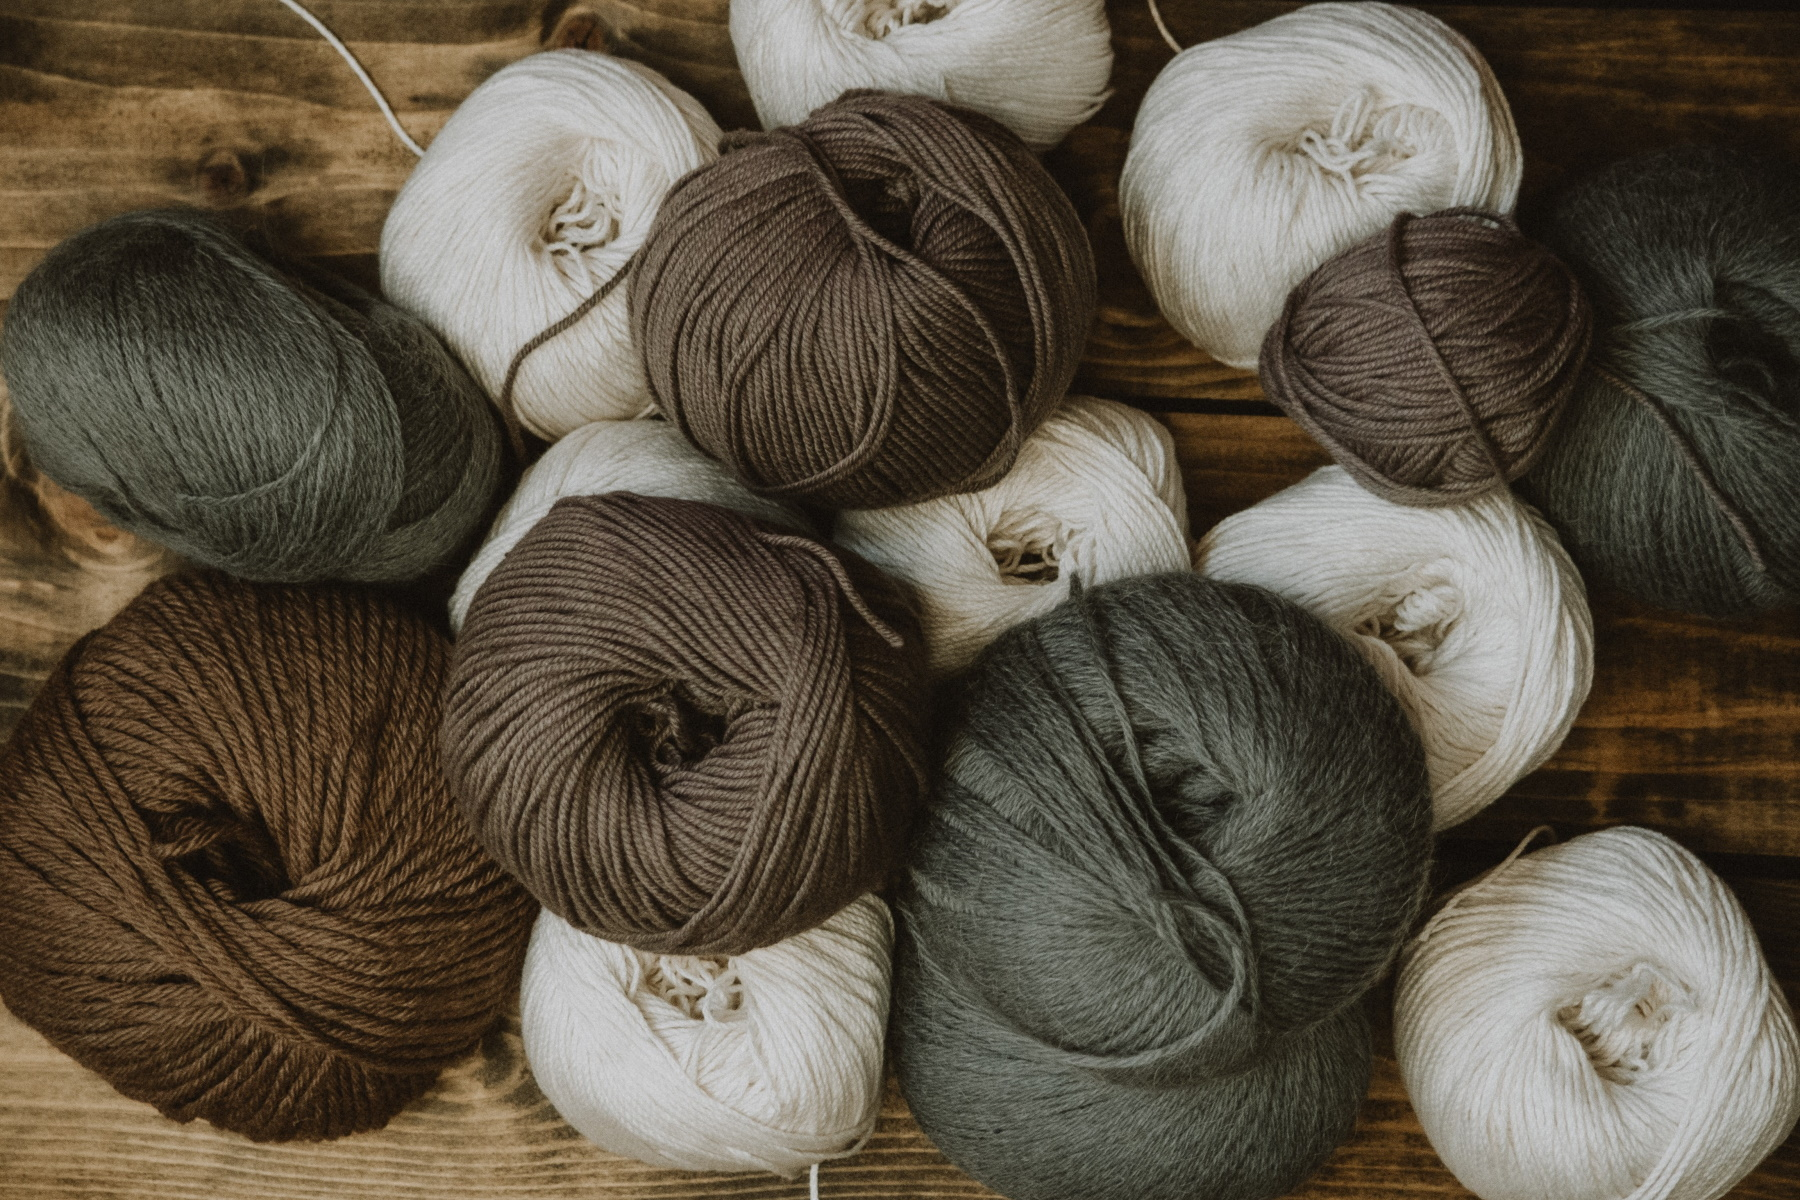 Tufting supplies yarn featured